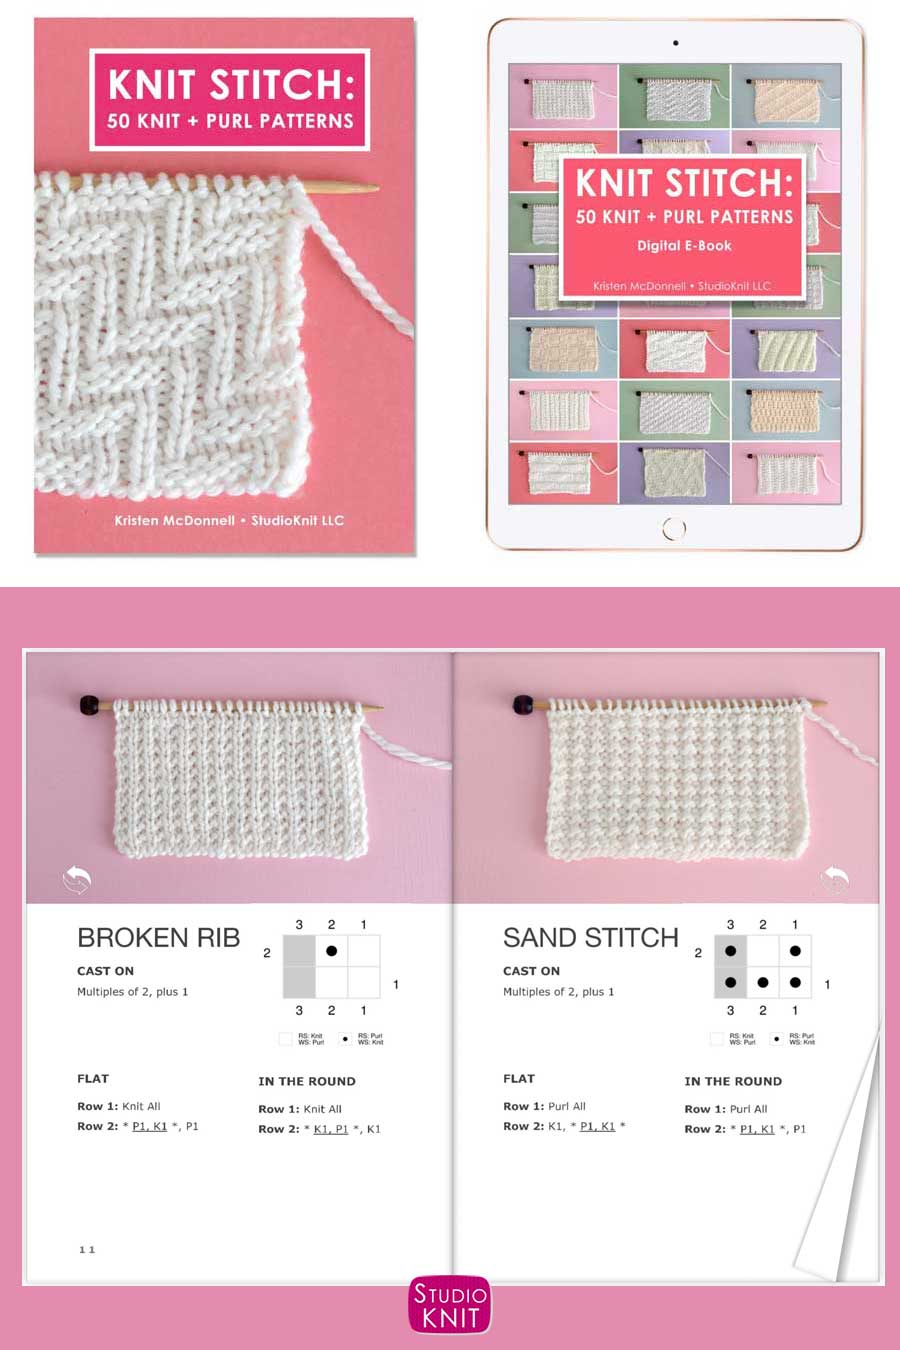 Knit Stitch Pattern Book with Broken Rib and Sand Stitch Patterns